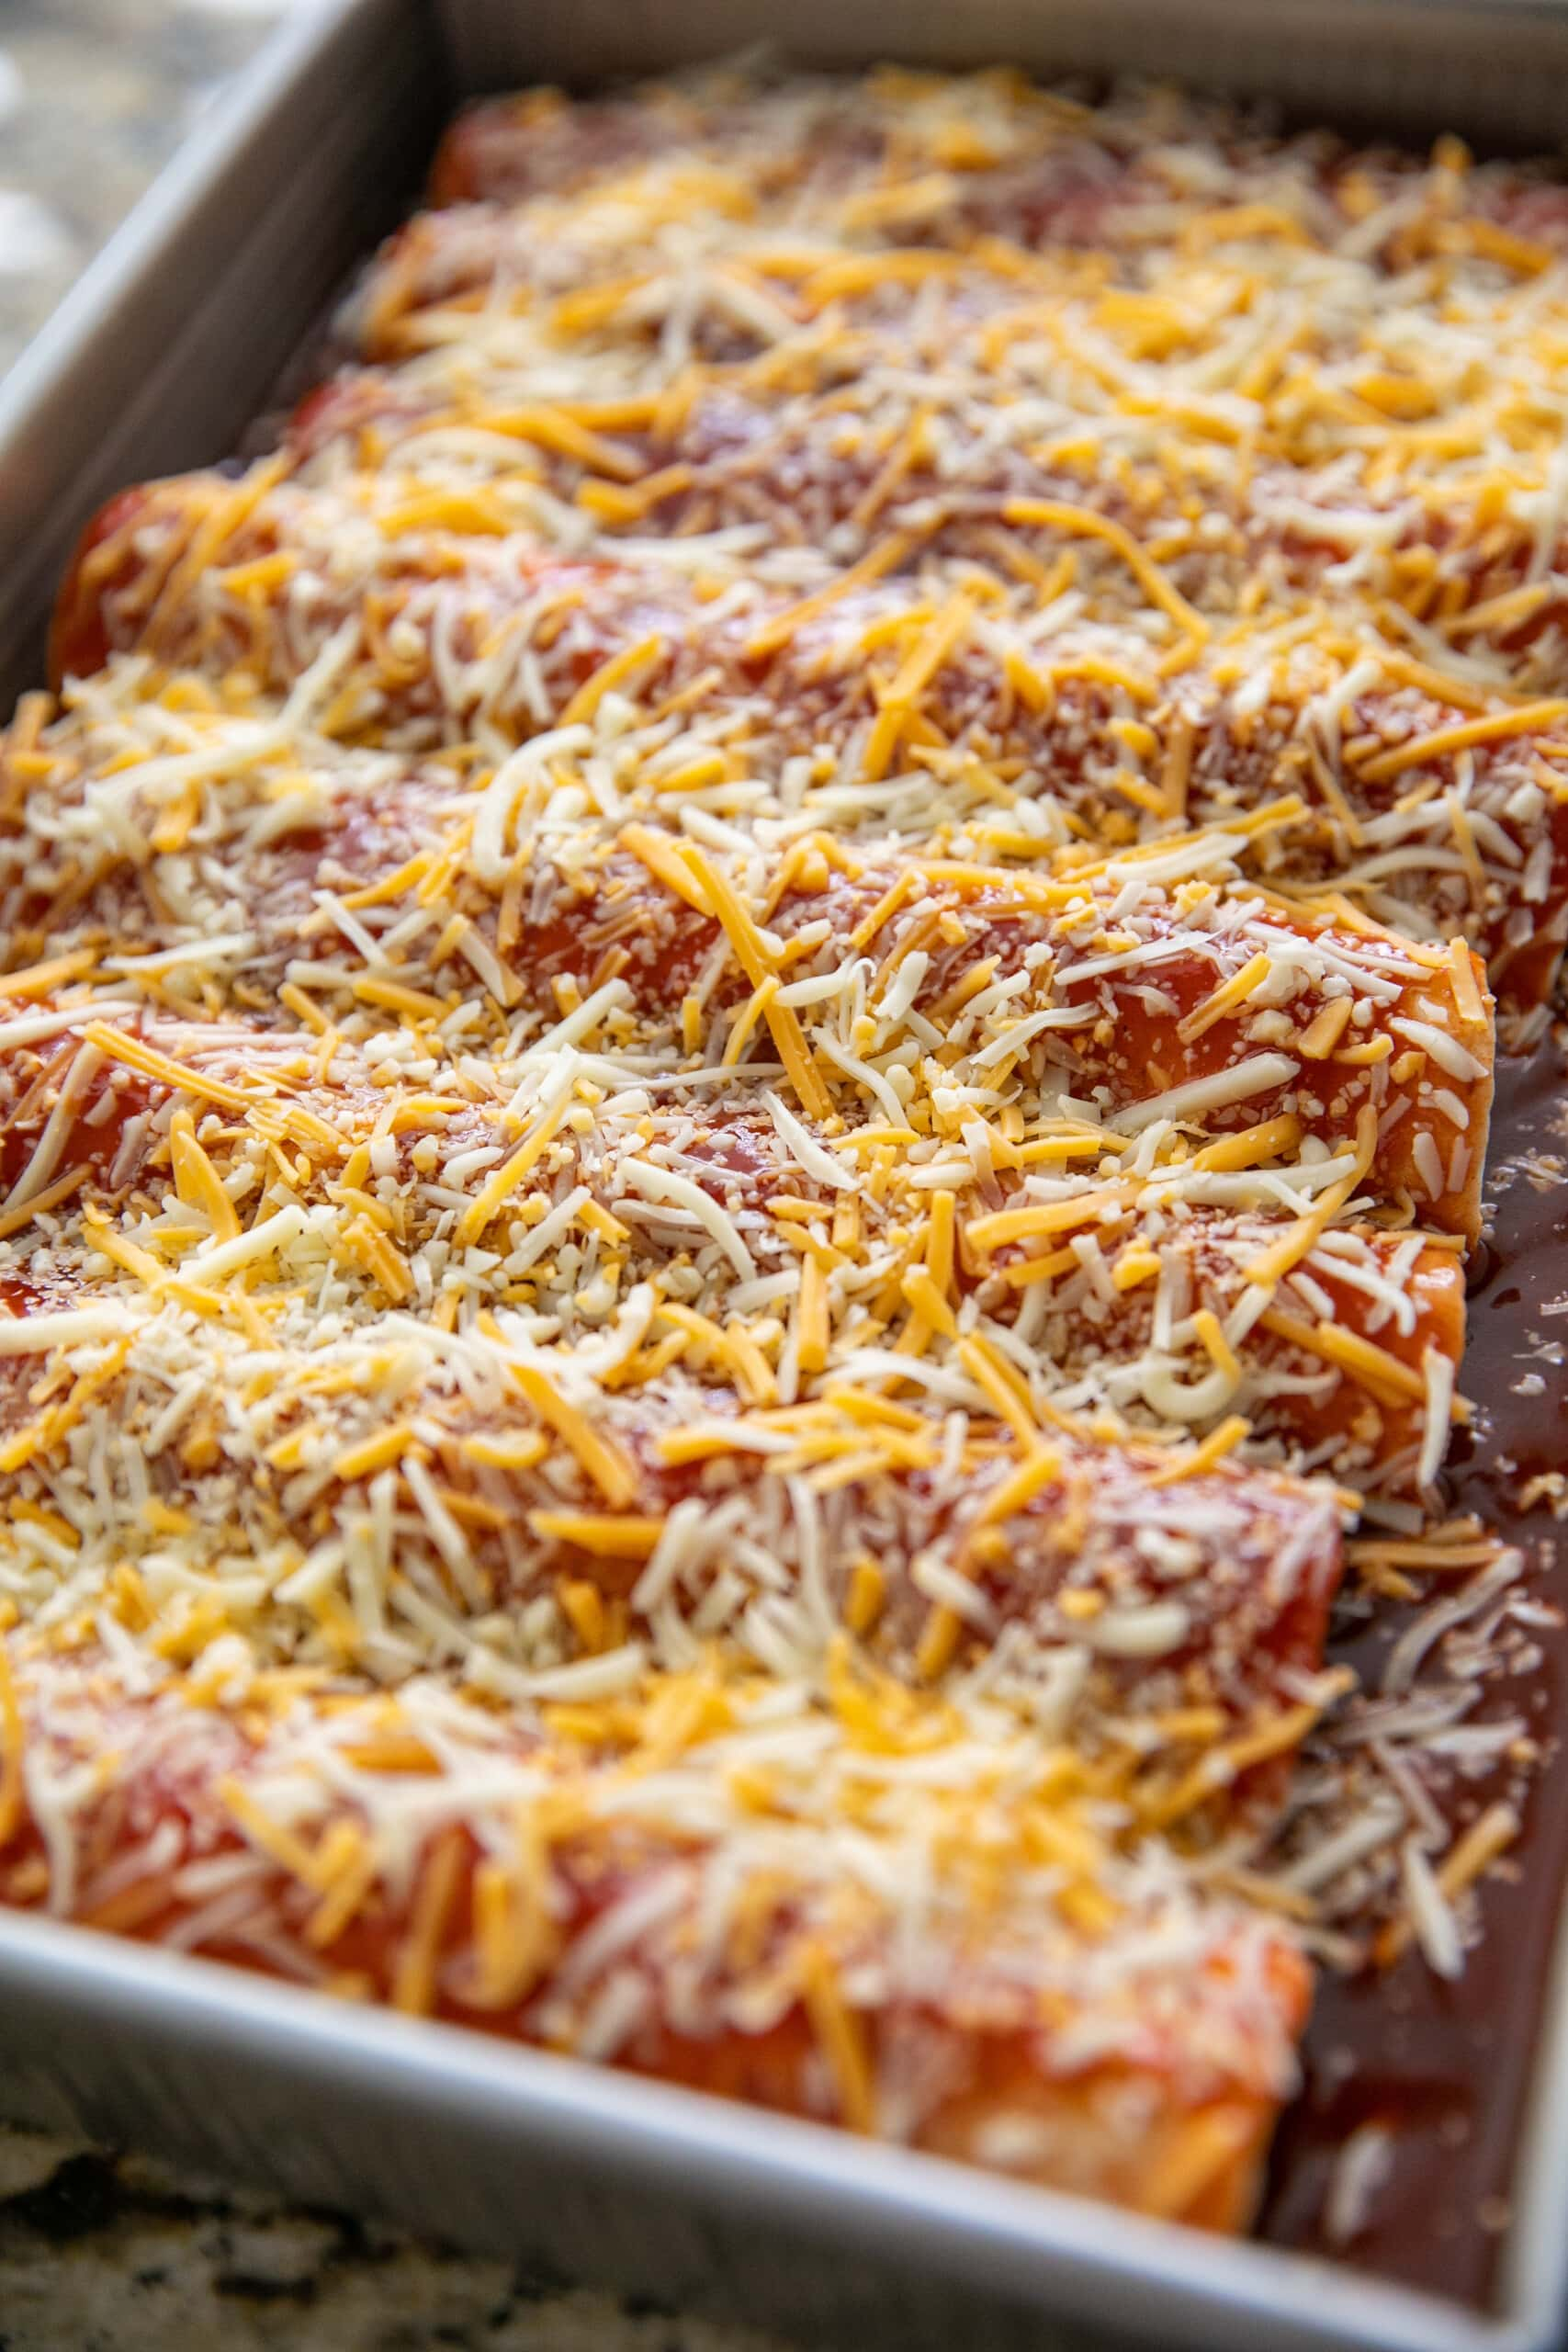 unbaked beef enchiladas in a baking dish with unmelted cheese on top